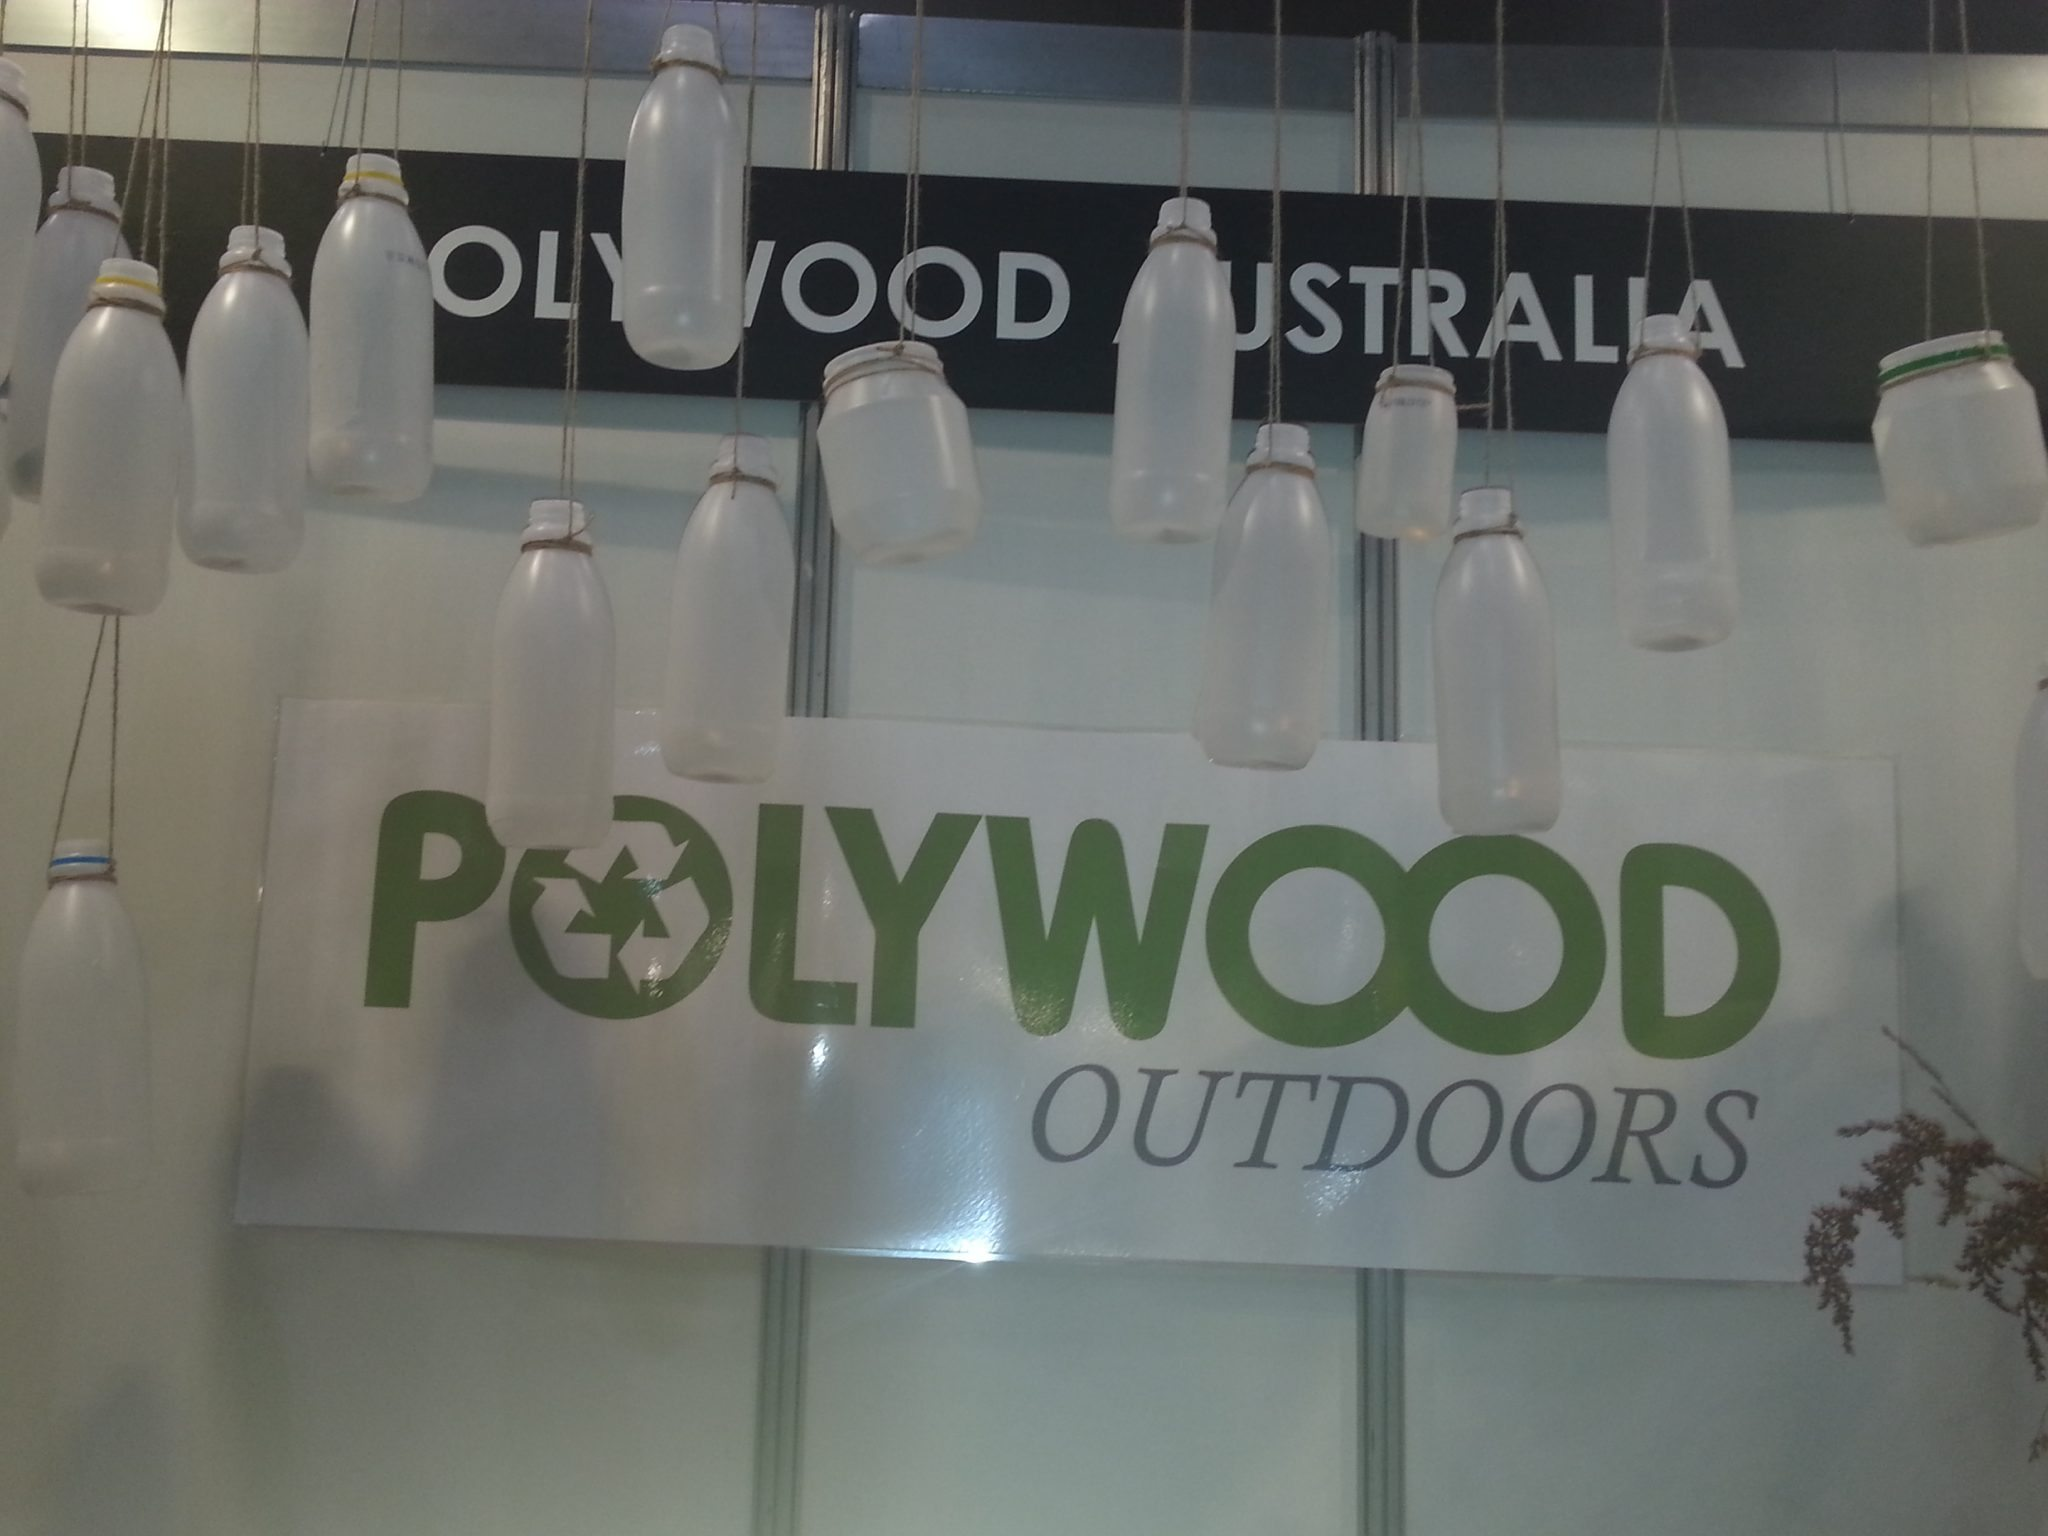 Polywood Outdoors